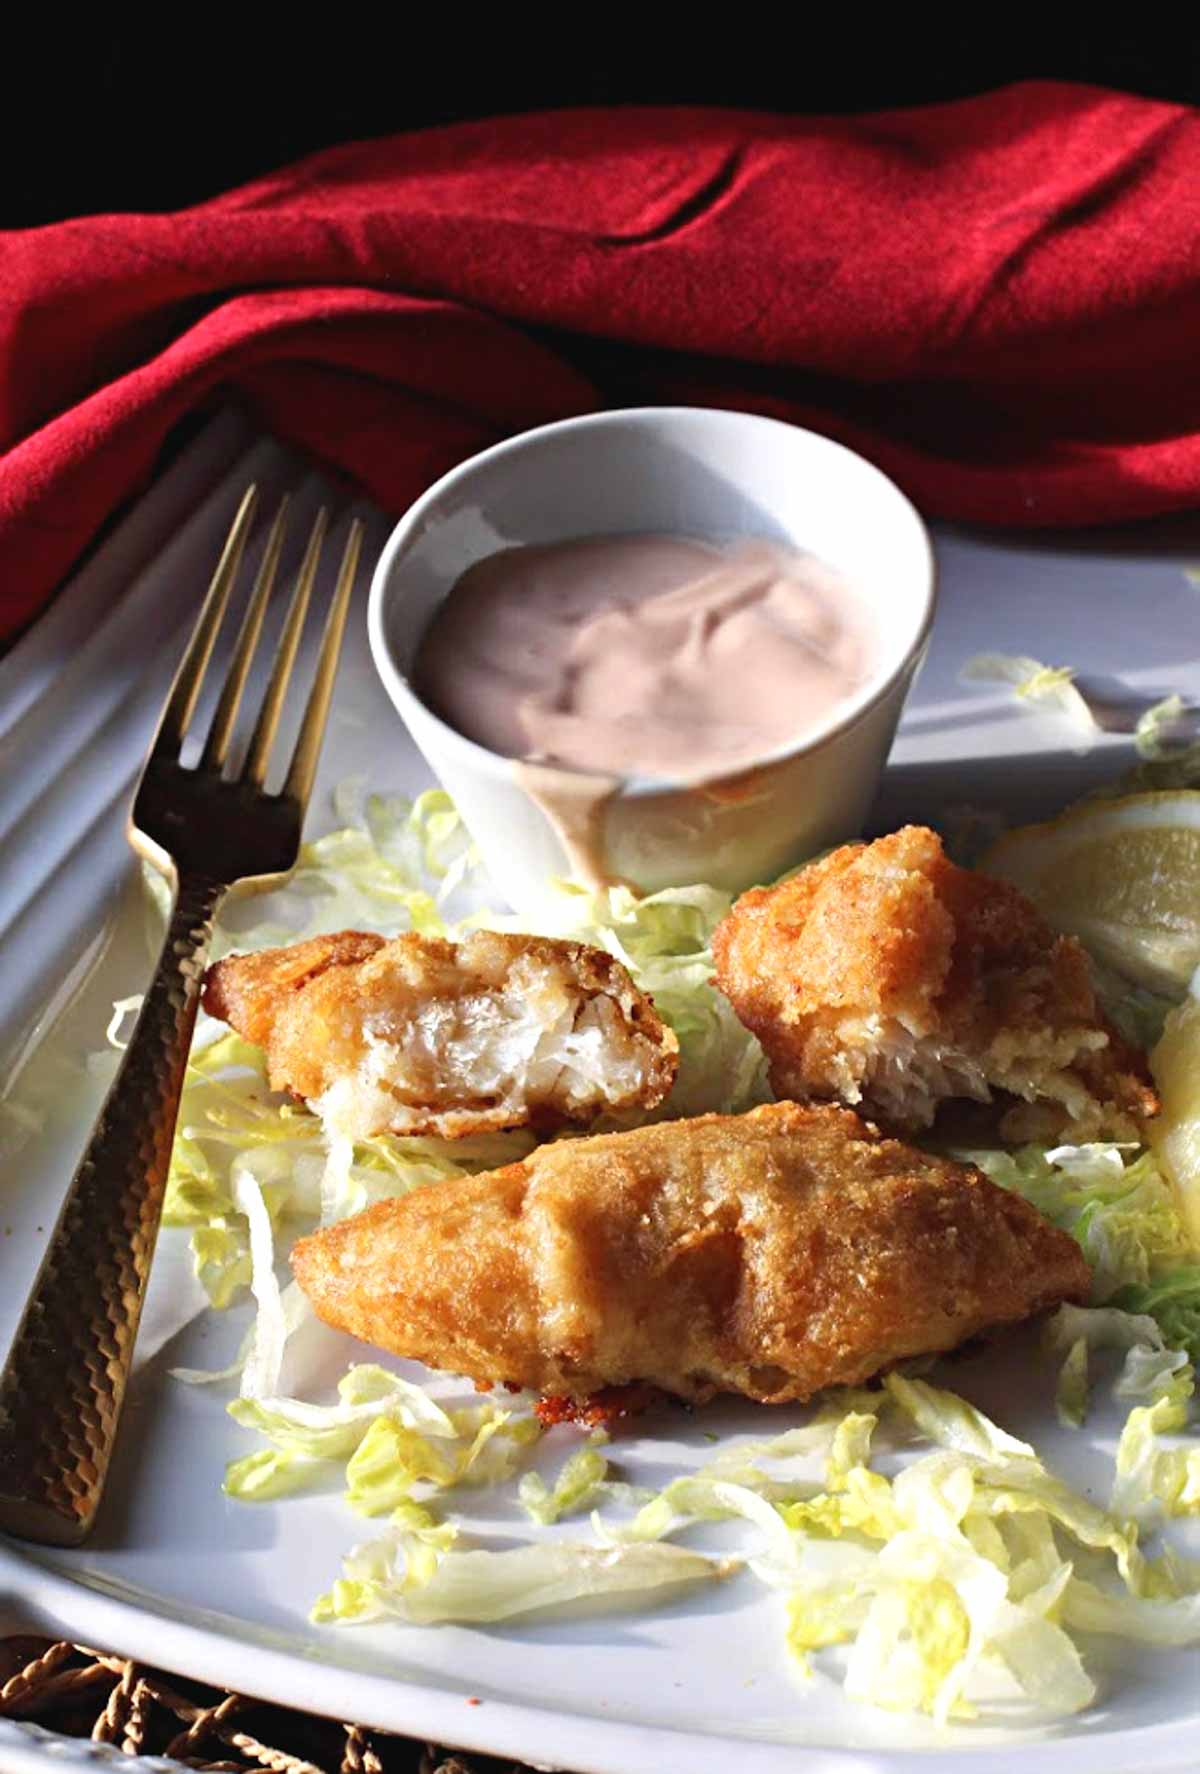 battered and fried cod served with Marie Rose Sauce